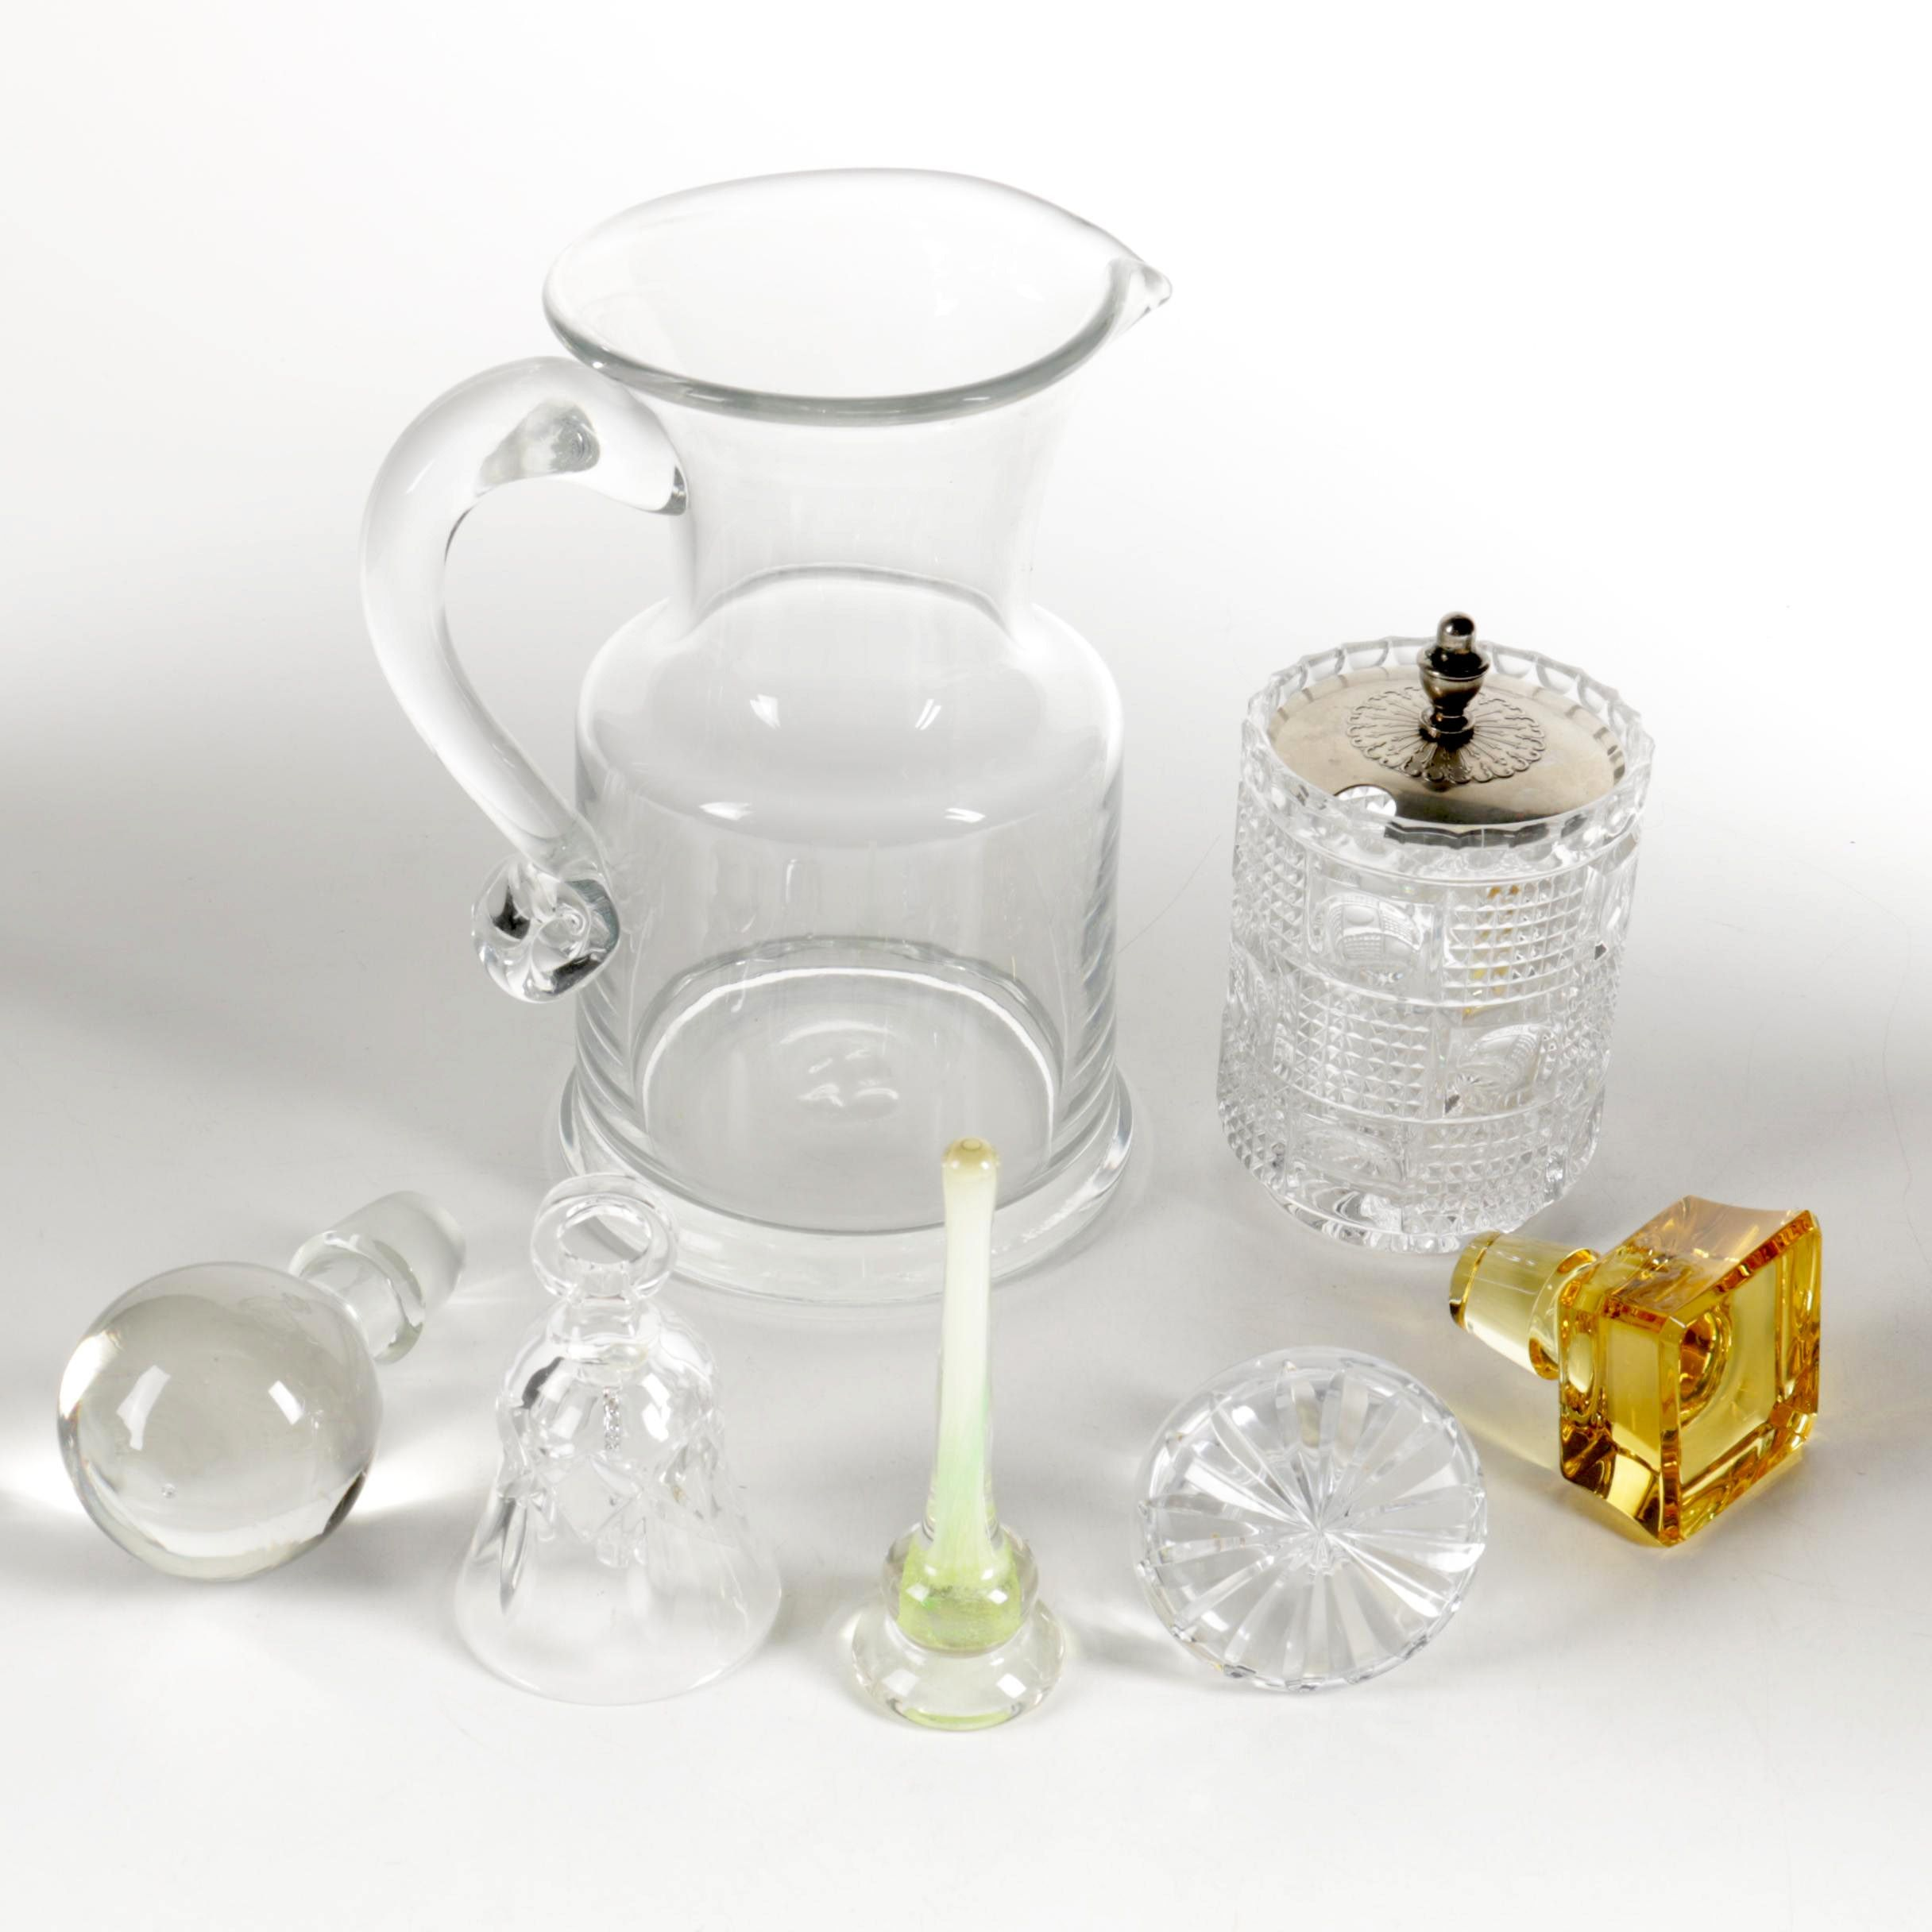 Variety Glass Decor and Vessels